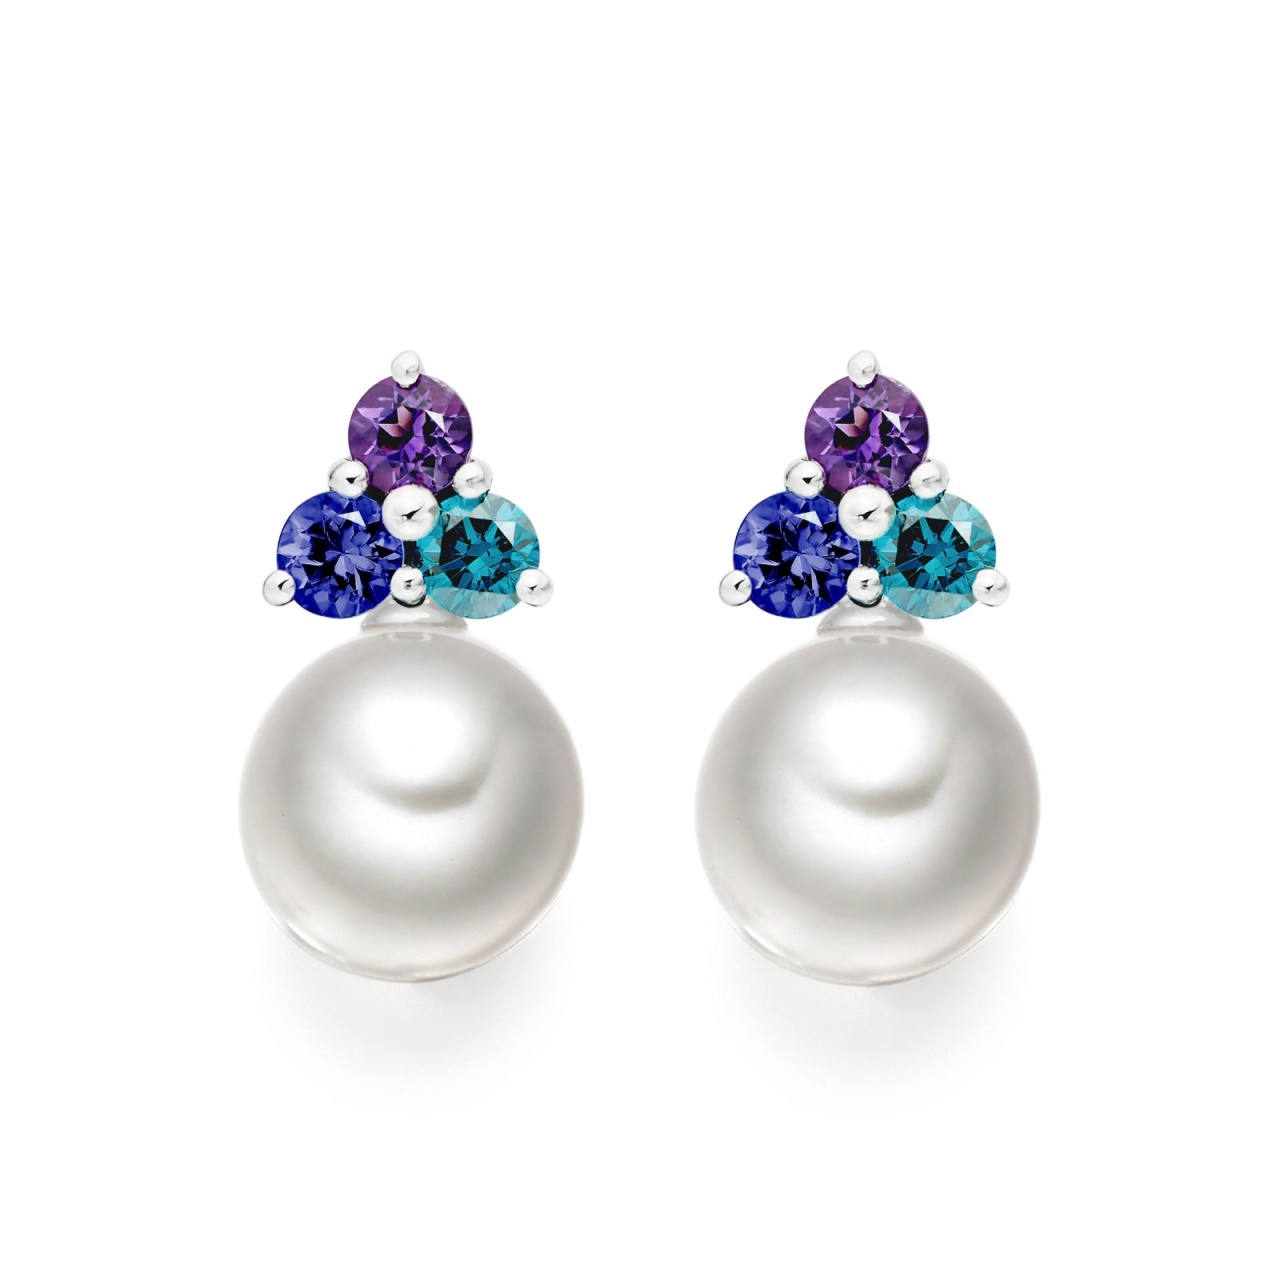 Astral Lagoon Studs in White Gold with Akoya Pearls-AEWRWG1337-1